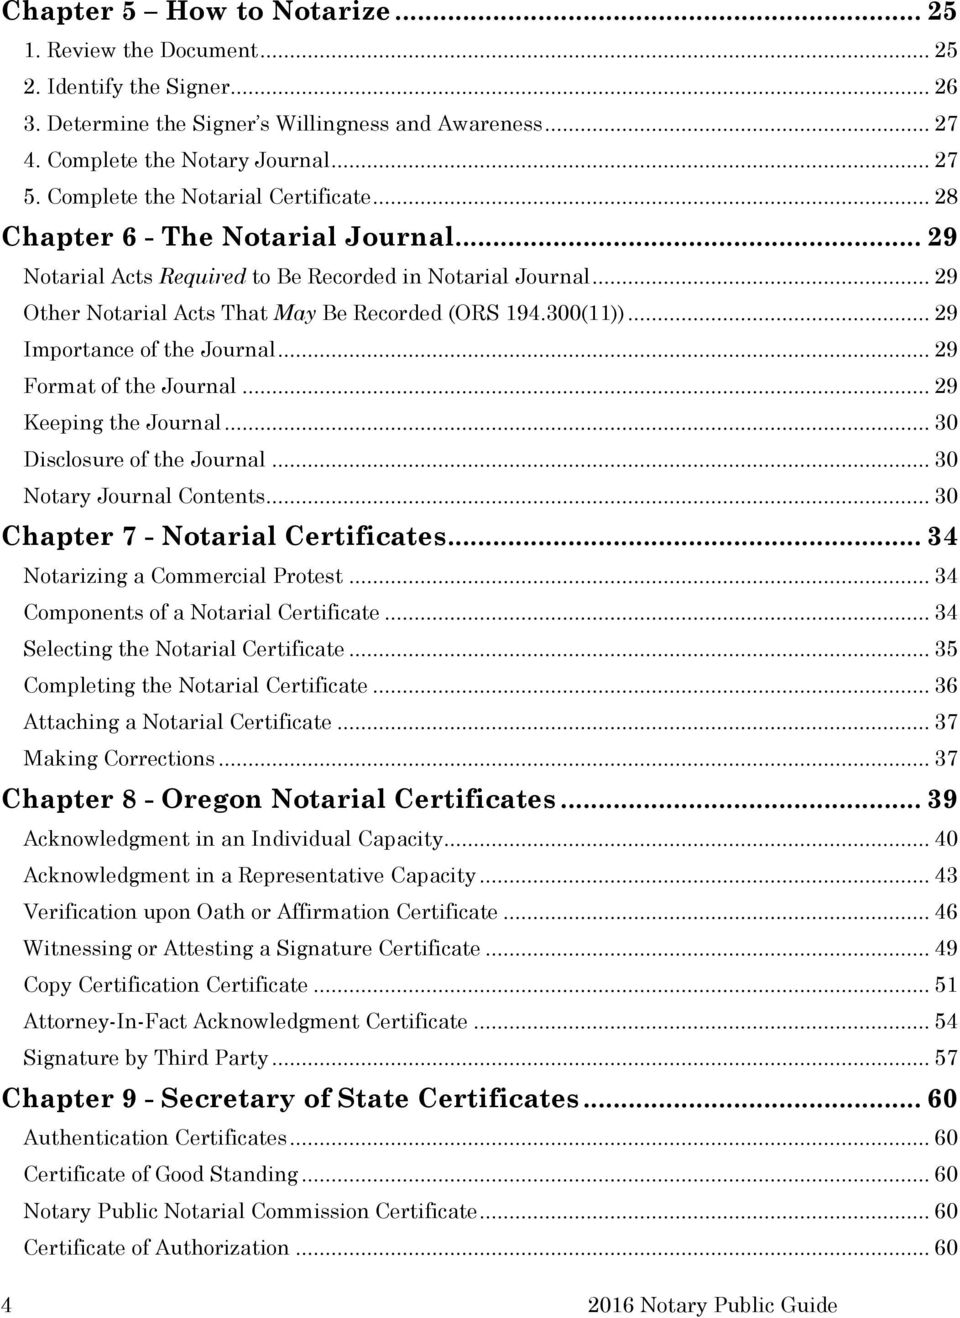 Oregon Notary Public Guide Corporation Division Secretary Of State